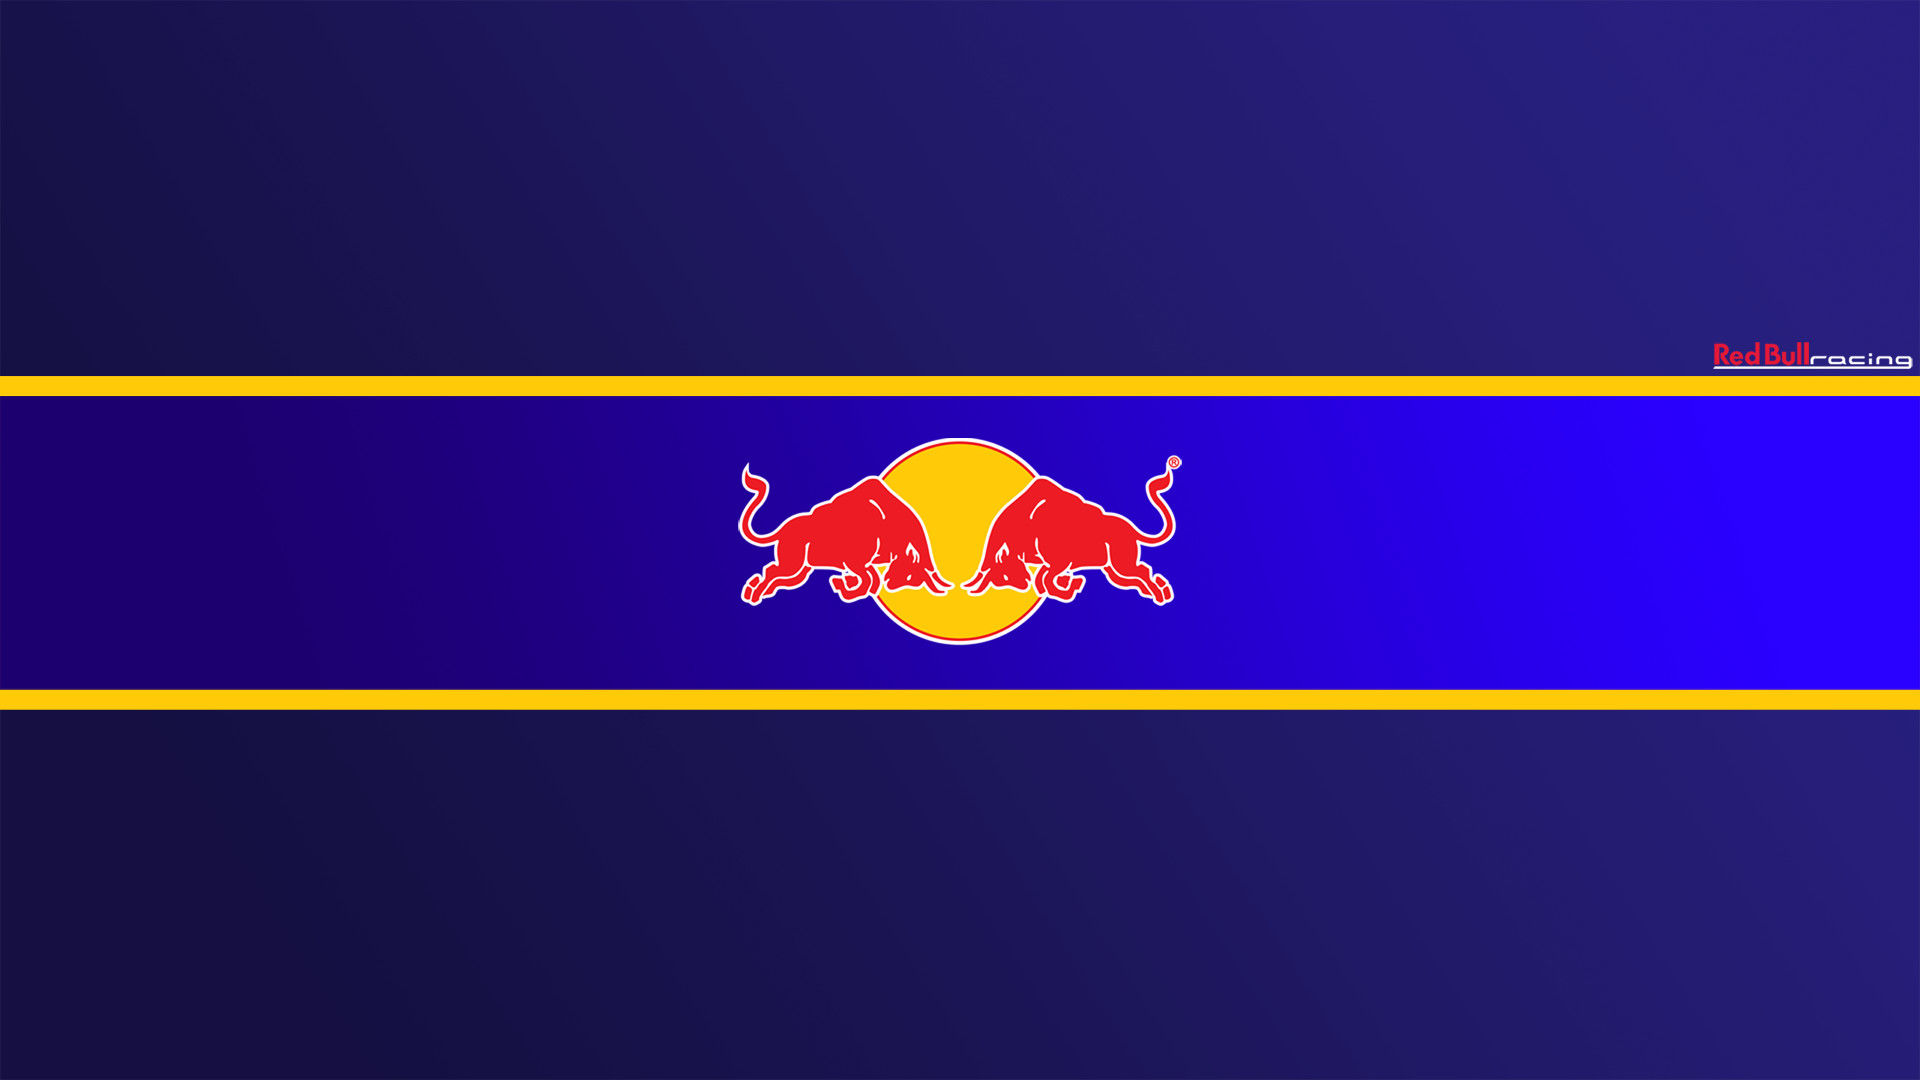 2048x2048 Red Bull Rb12 F1 Ipad Air Hd 4k Wallpapers: Red Bull Racing Wallpaper (71+ Pictures